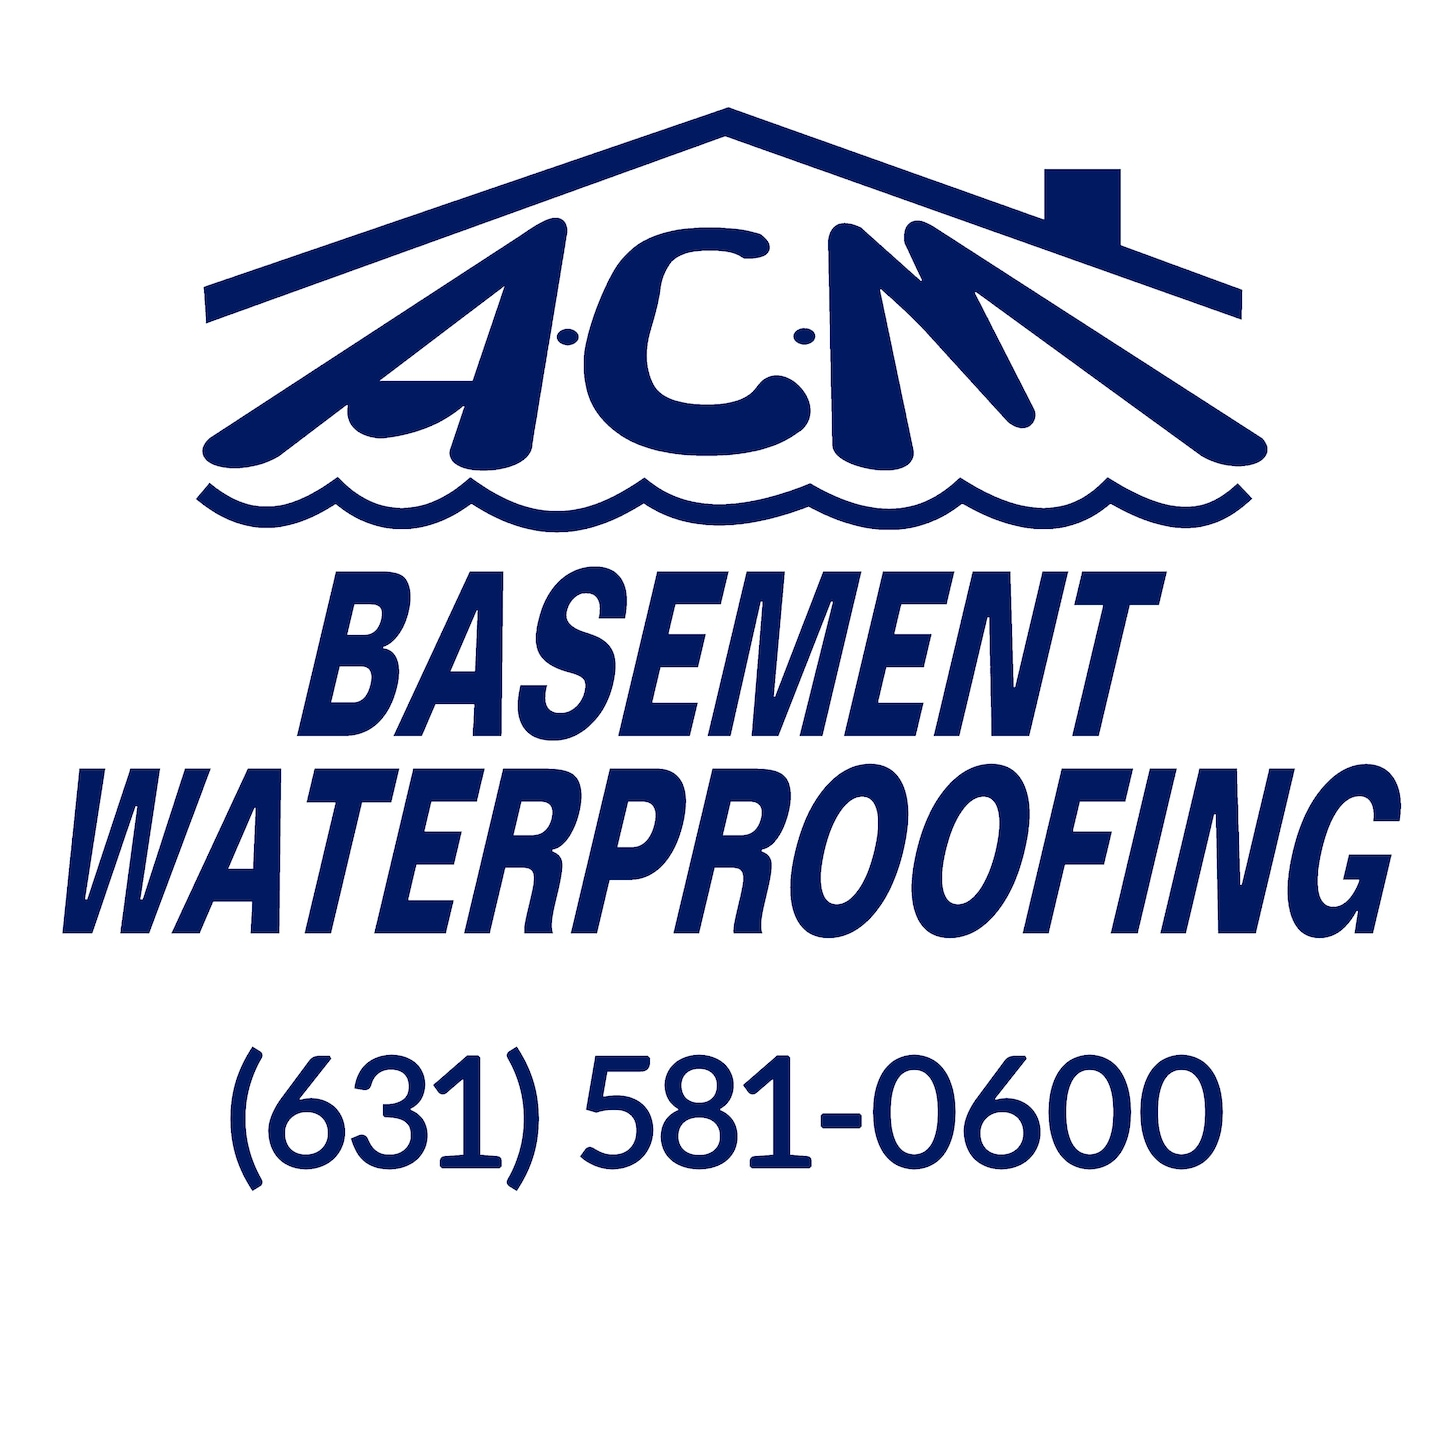 ACM Basement Waterproofing